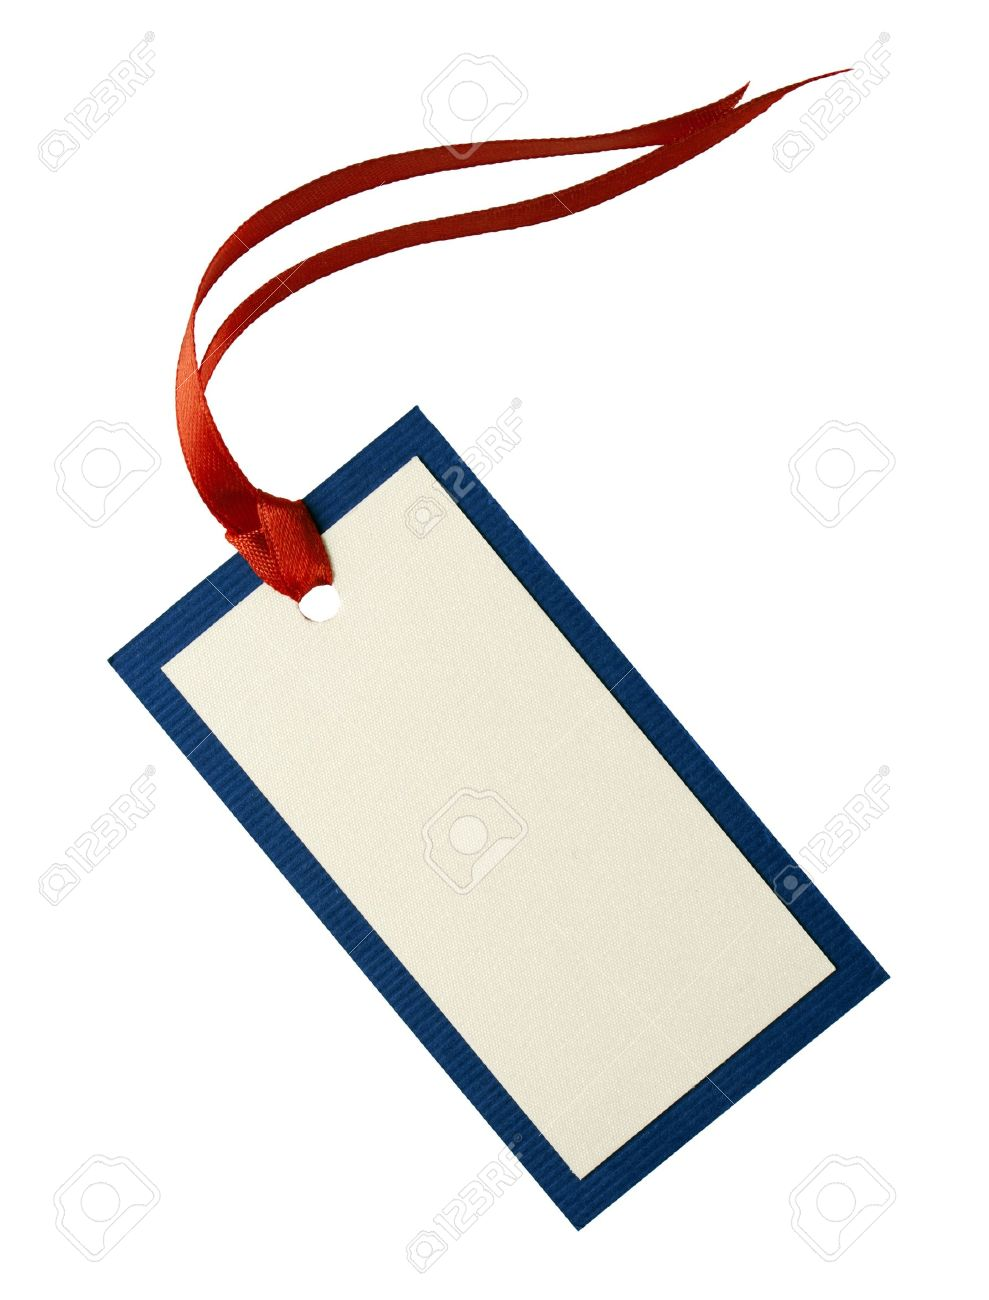 blank tag tied with string price tag gift tag sale tag address